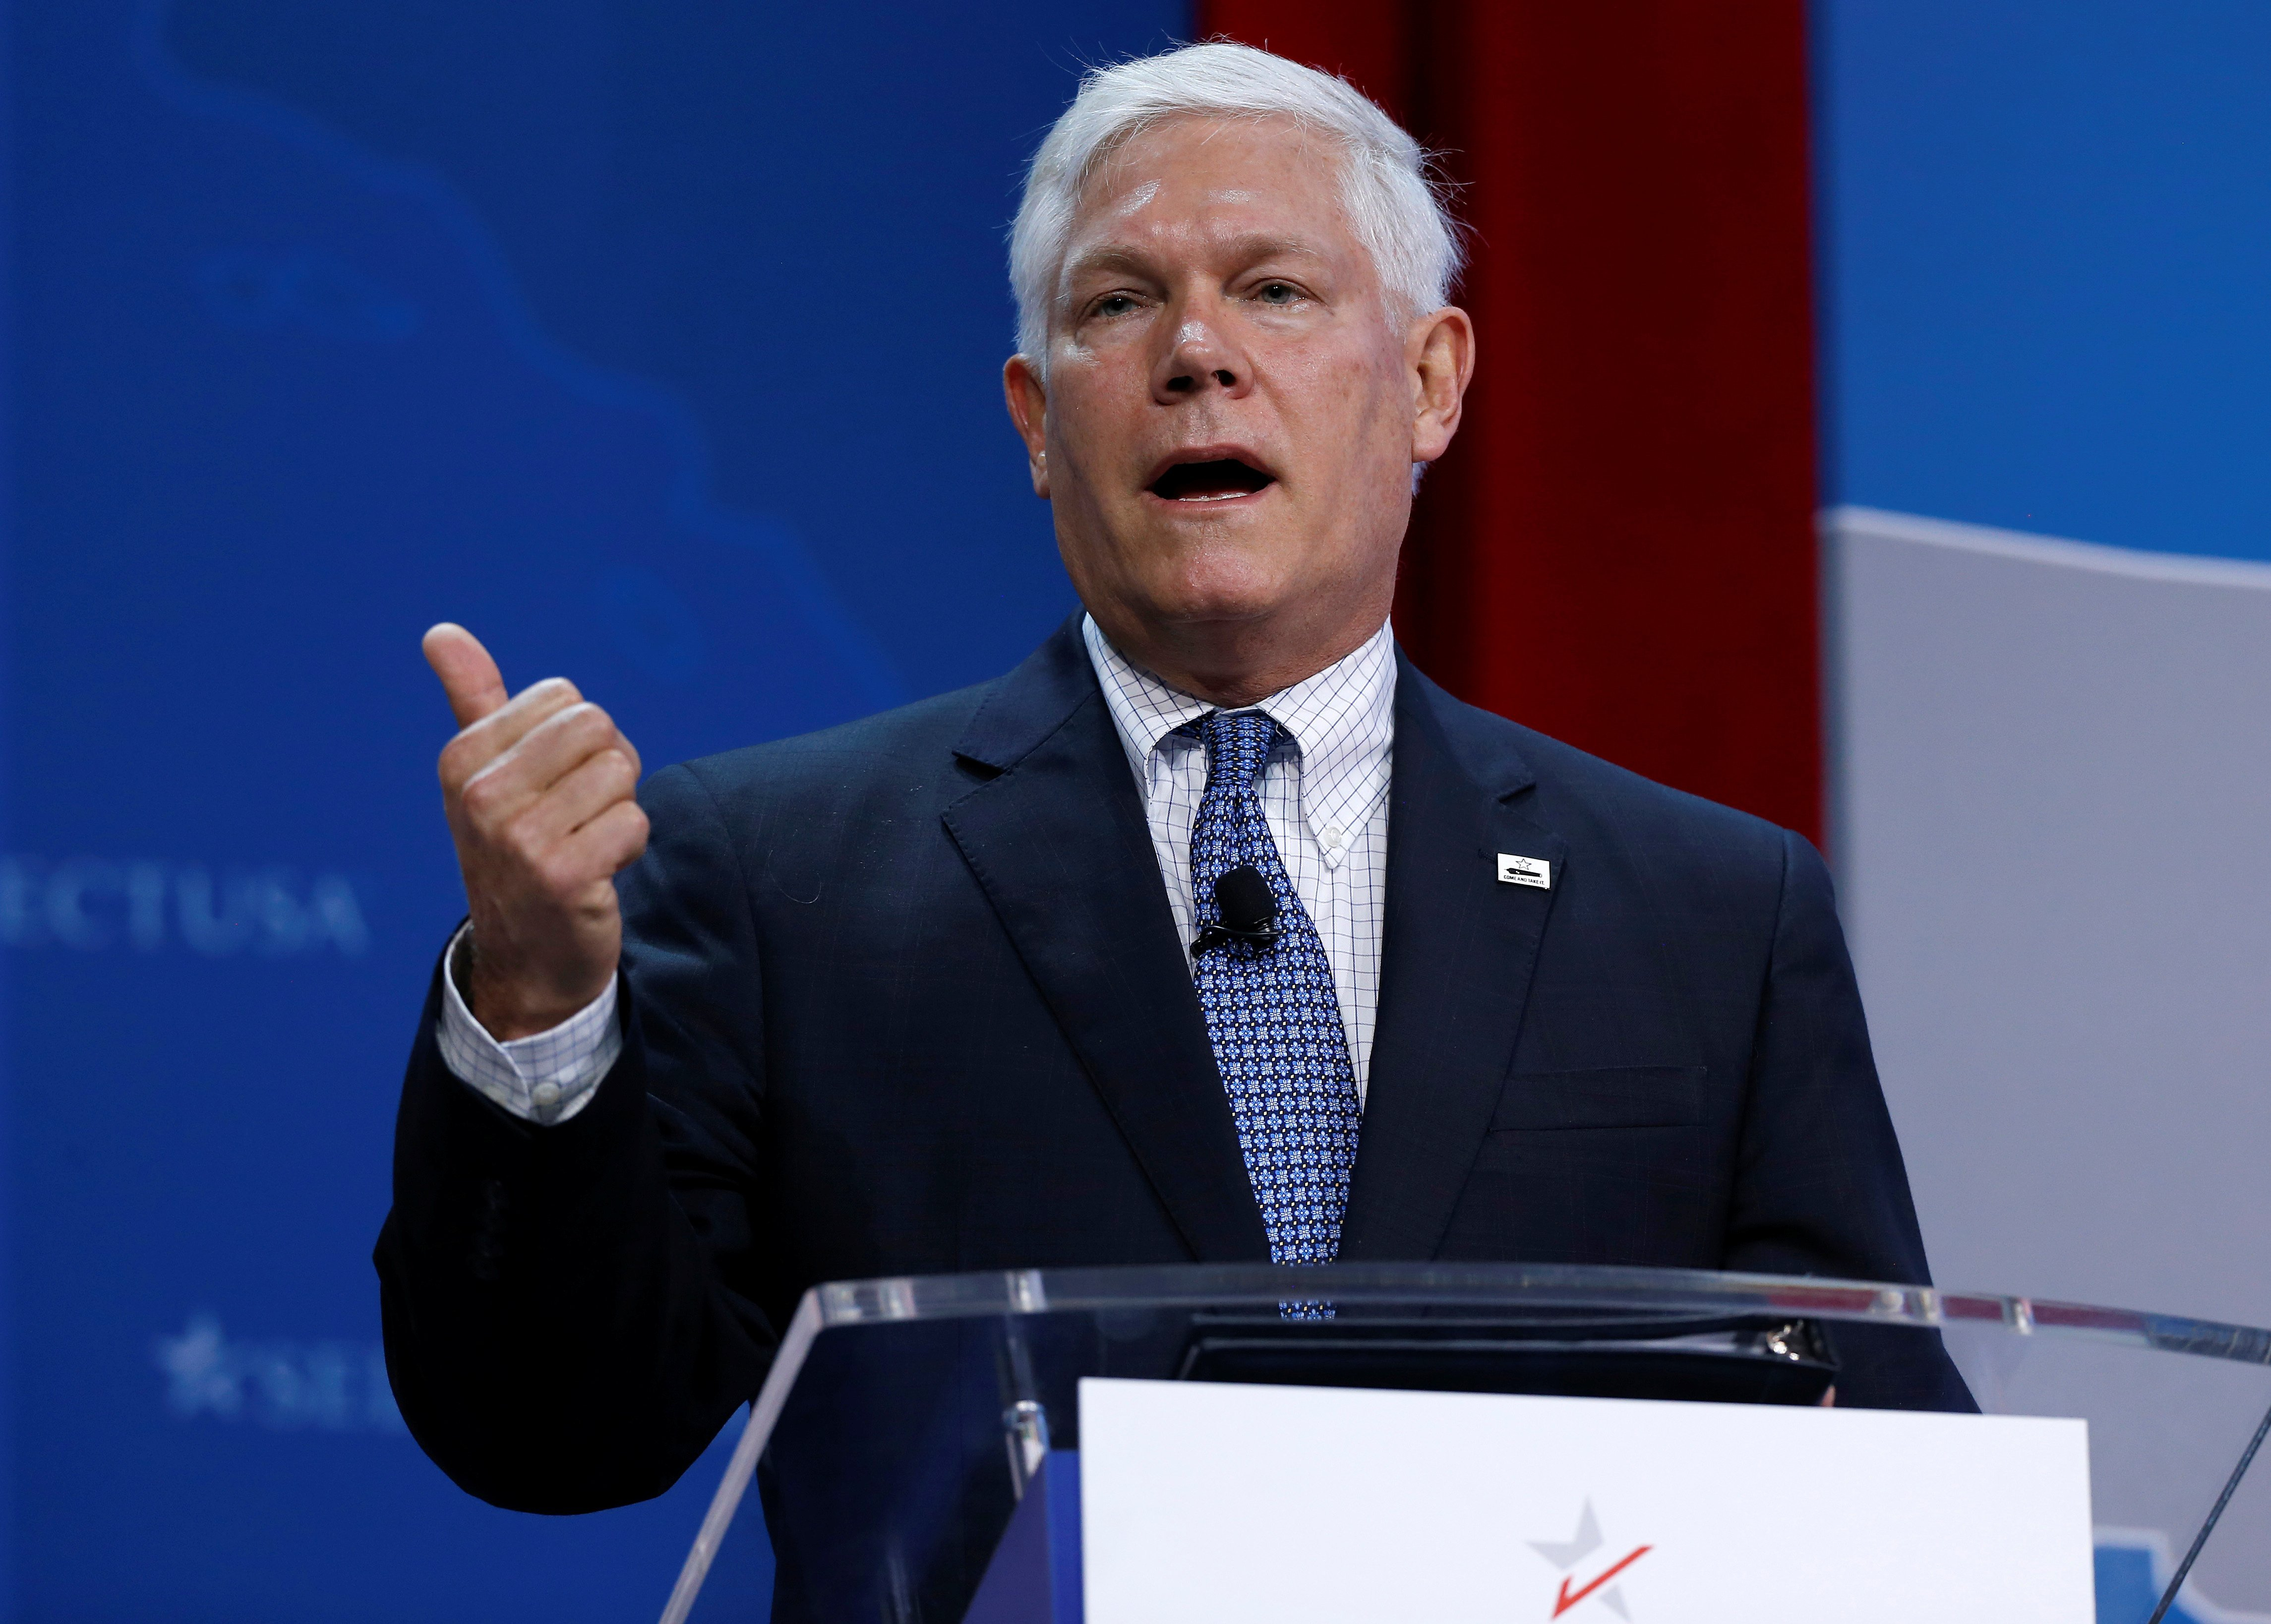 Former Rep. Pete Sessions subpoenaed on matters connected to Giuliani and associates' Ukraine dealings, source says